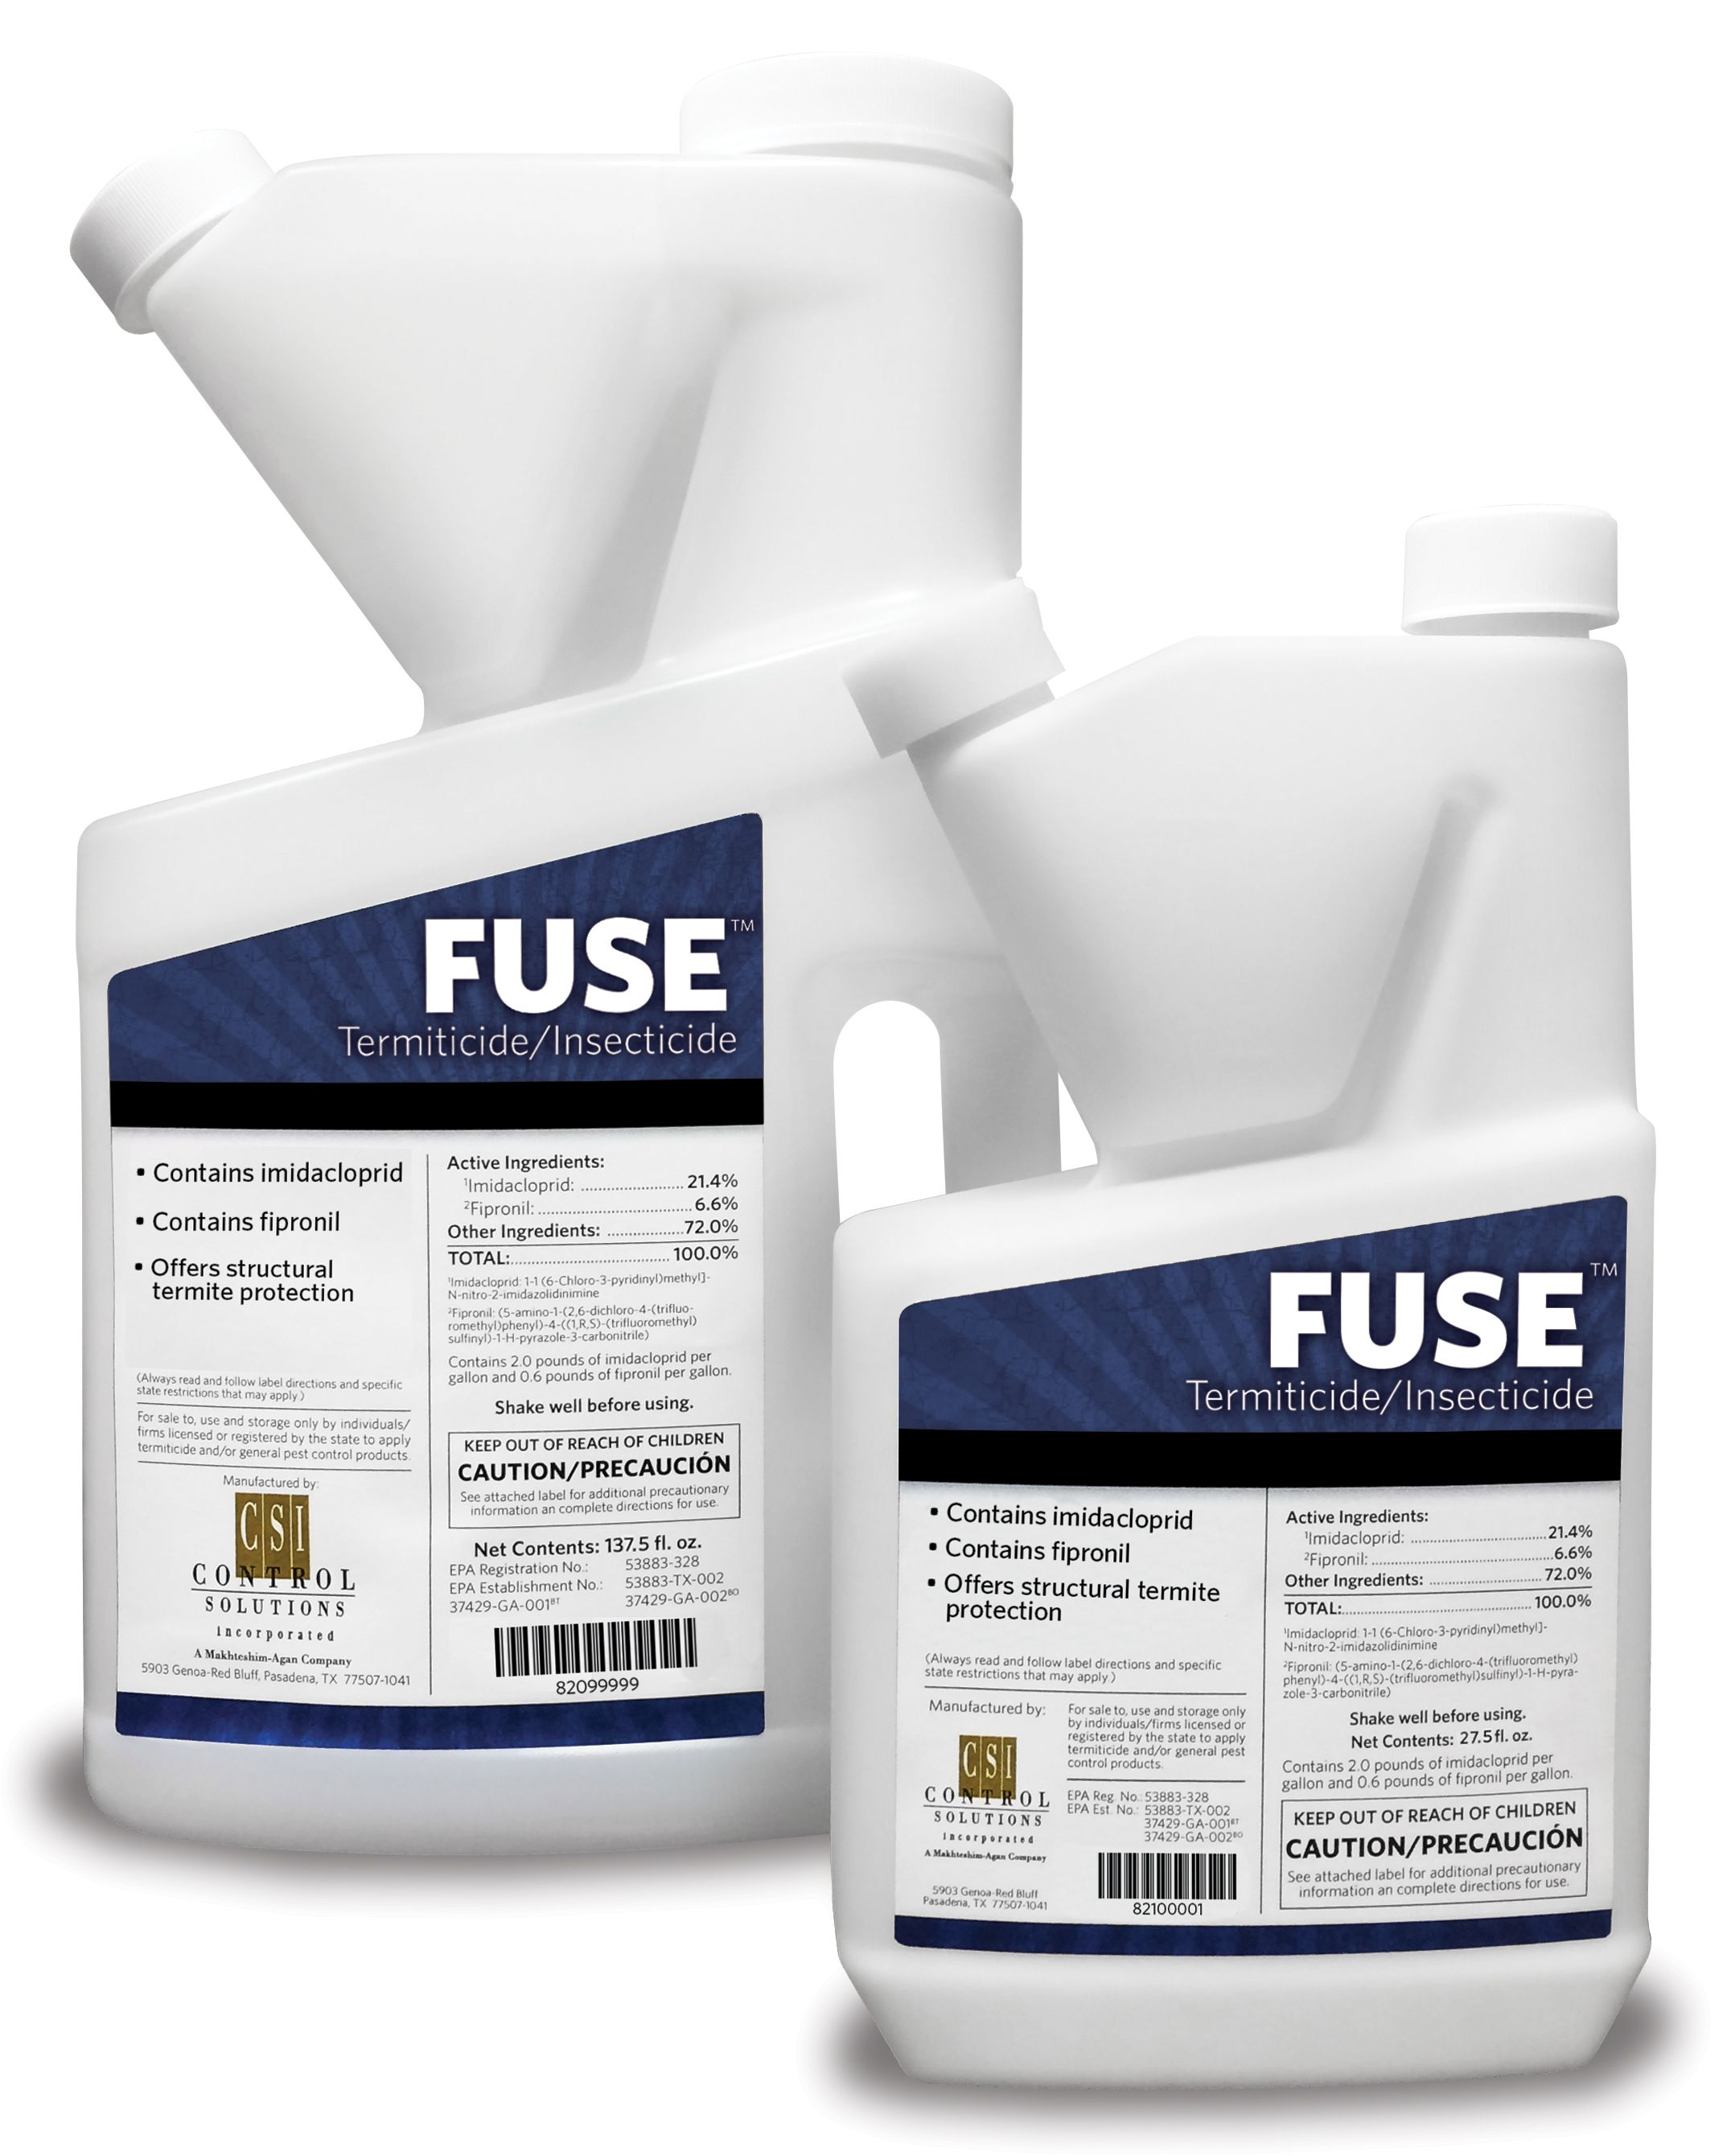 FUSE™ Termiticide/Insecticide is a new product that contains two